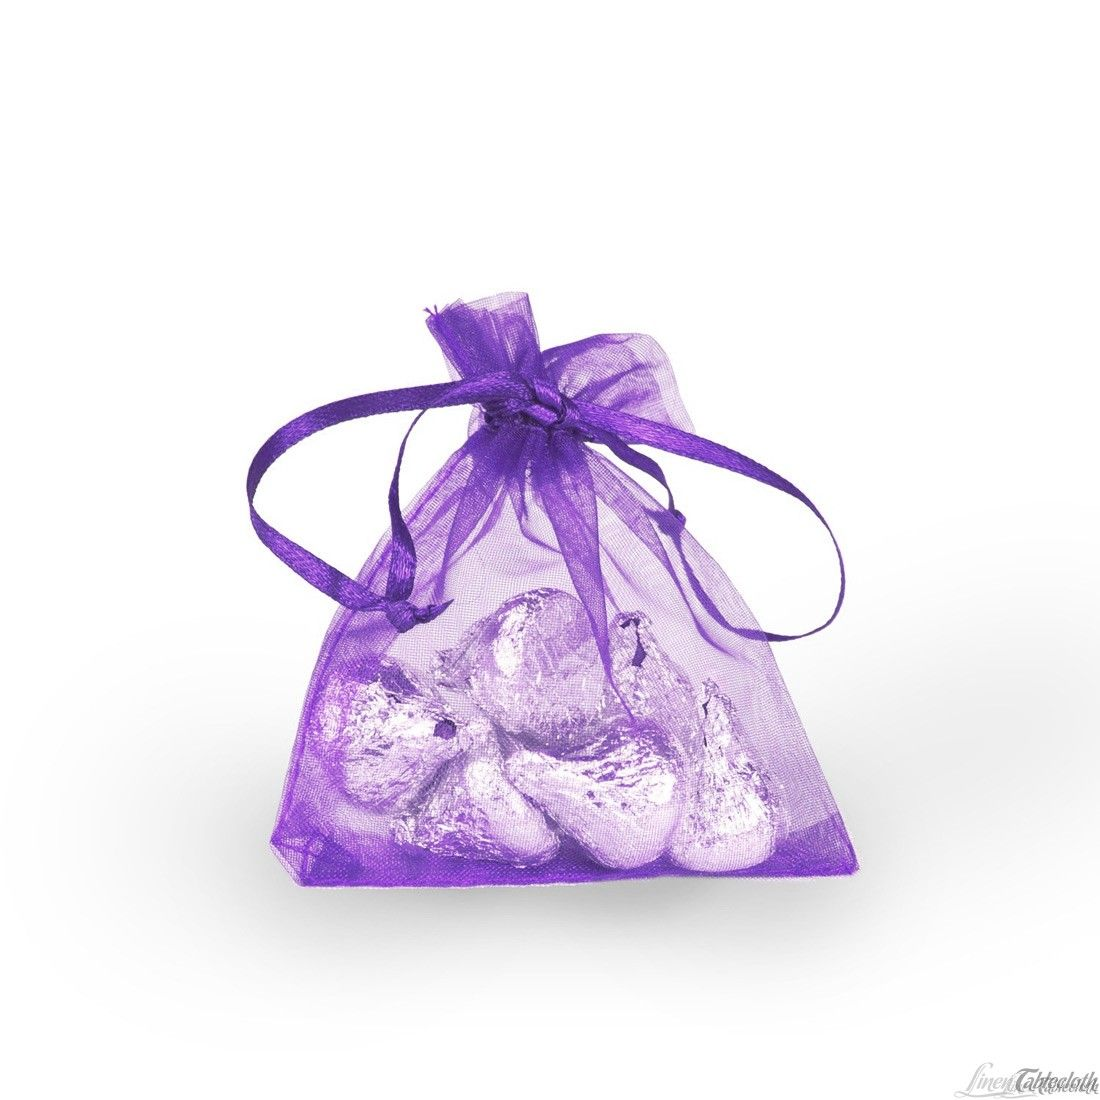 Buy 3 x 4 in. purple organza favor bags for weddings and special ...